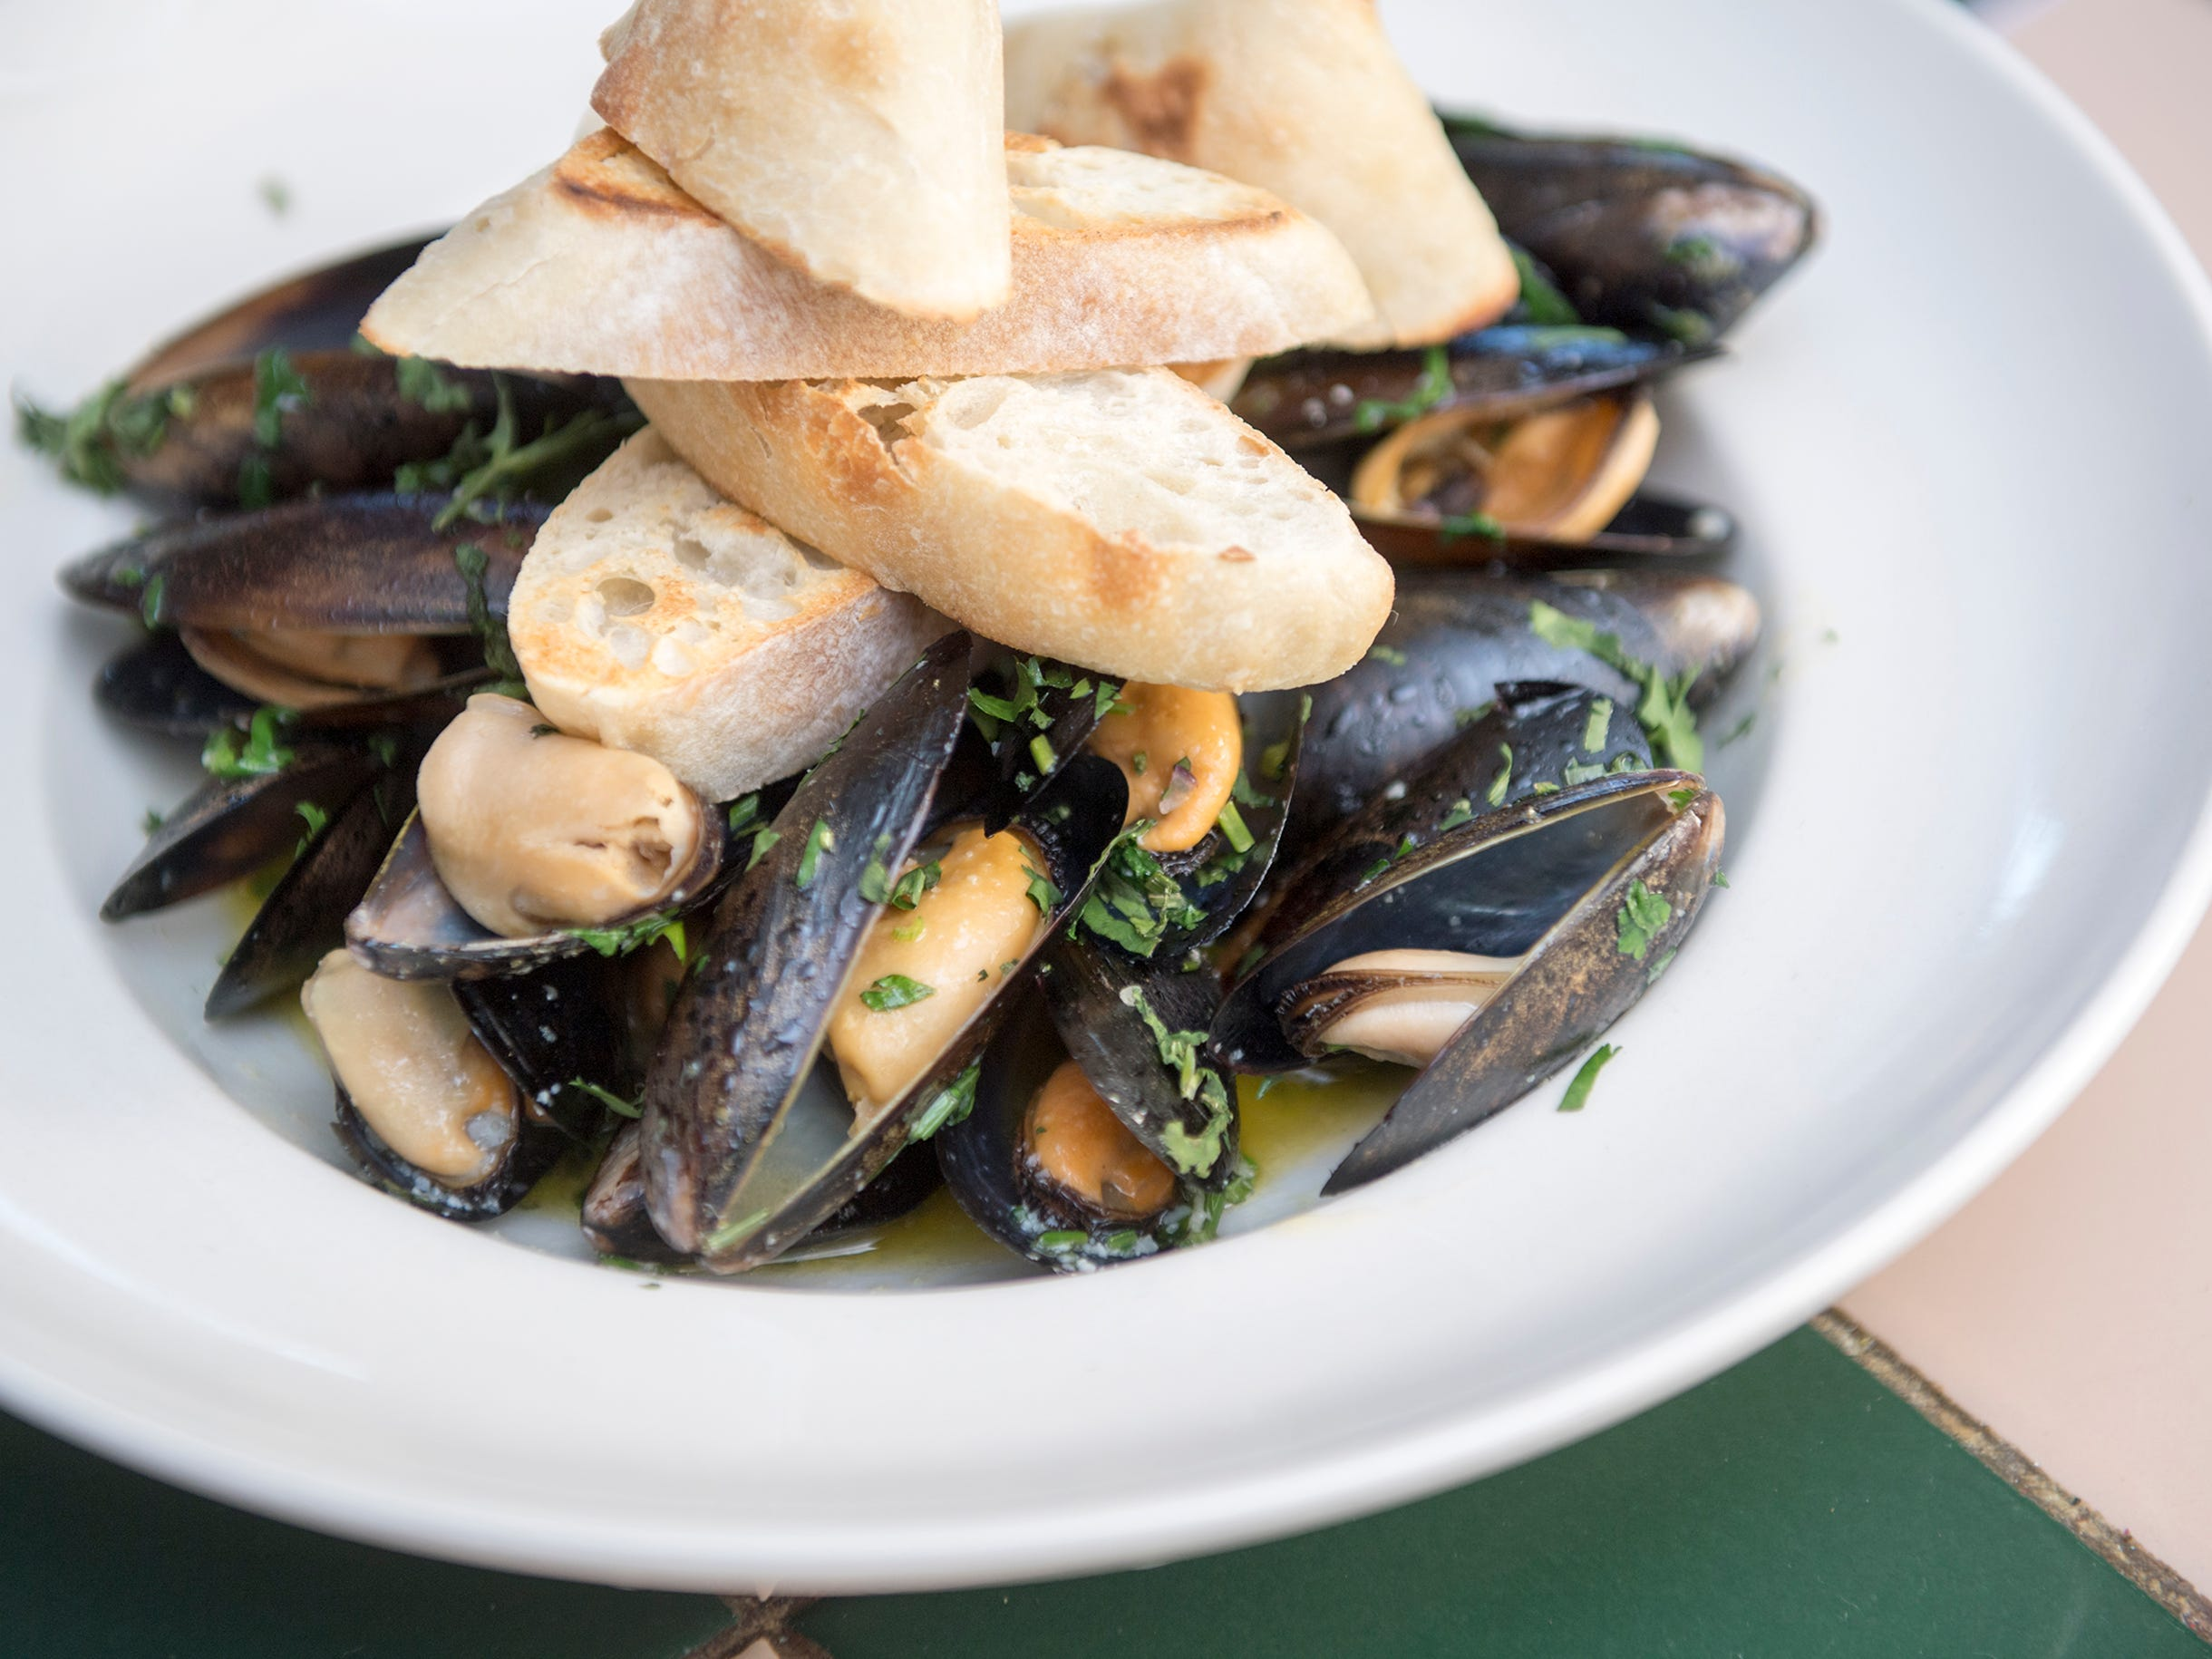 A tequila mussels dish with lime and tequila sauce served with toasted bread from La Esperanza in Lindenwold.